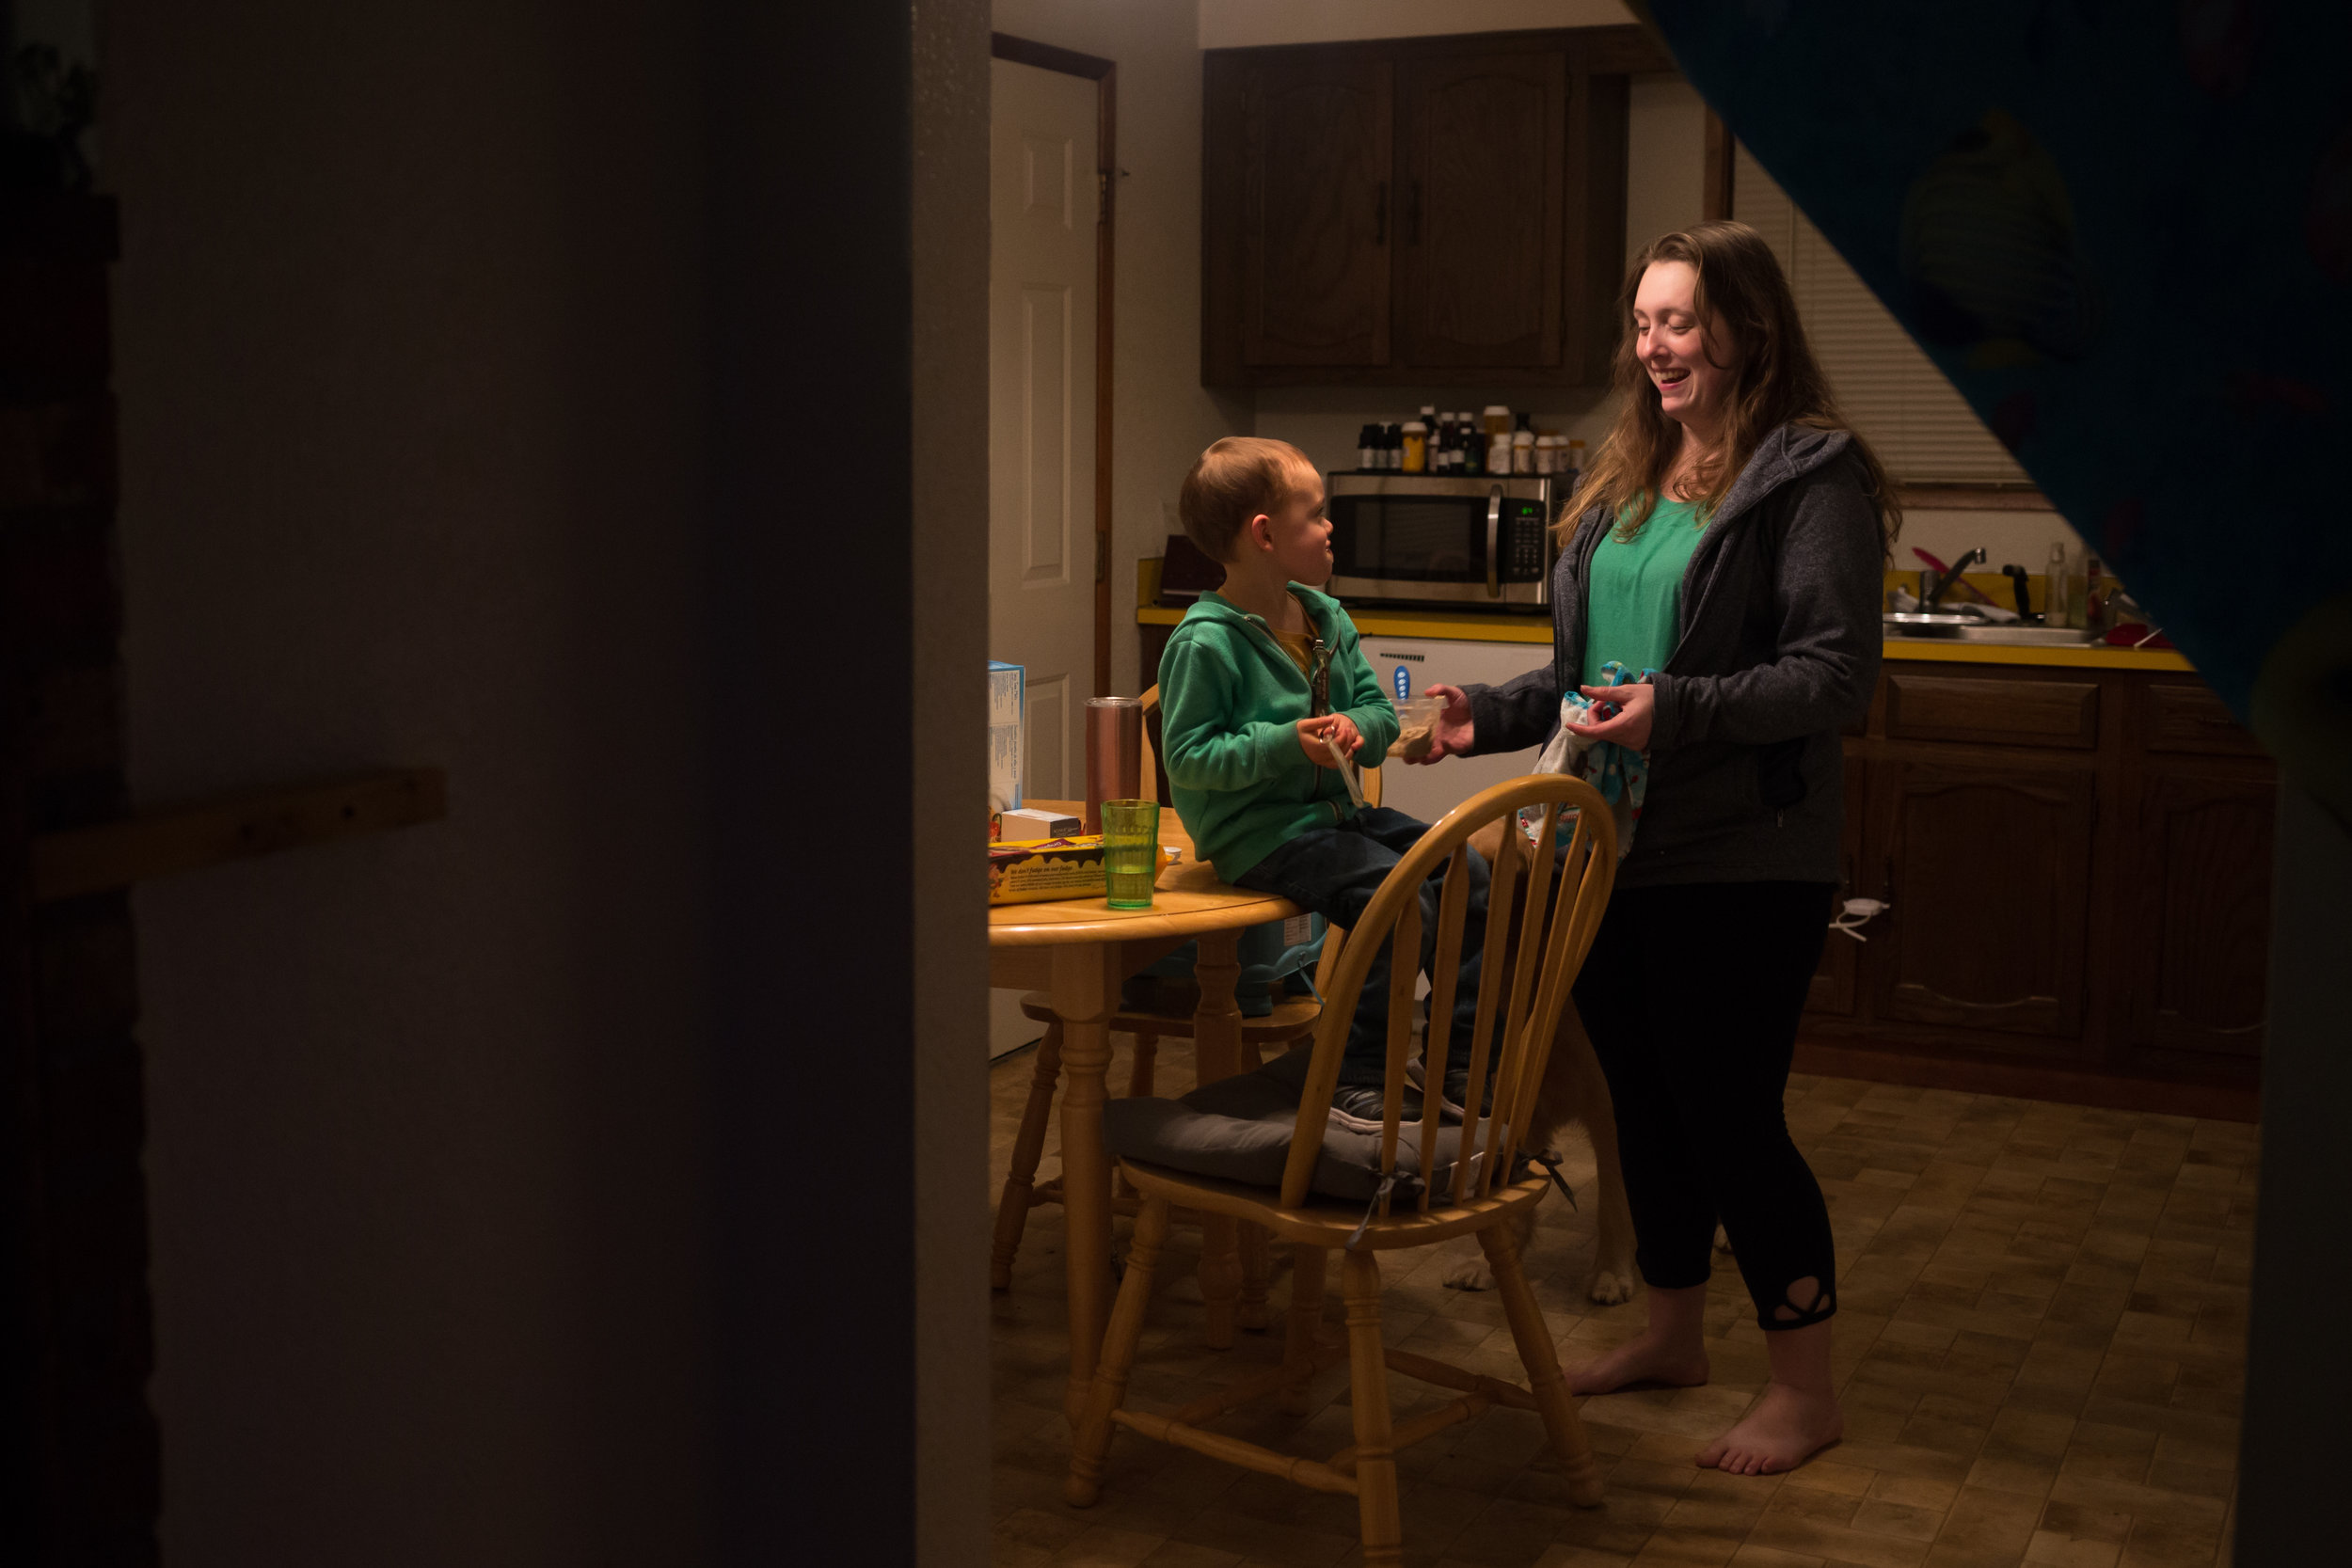 James and Paige enjoy dinner at their home in Springfield, Oregon. Paige, a single mom,works two jobs as a an inventory manager and production worker at a local warehouse to support her family.